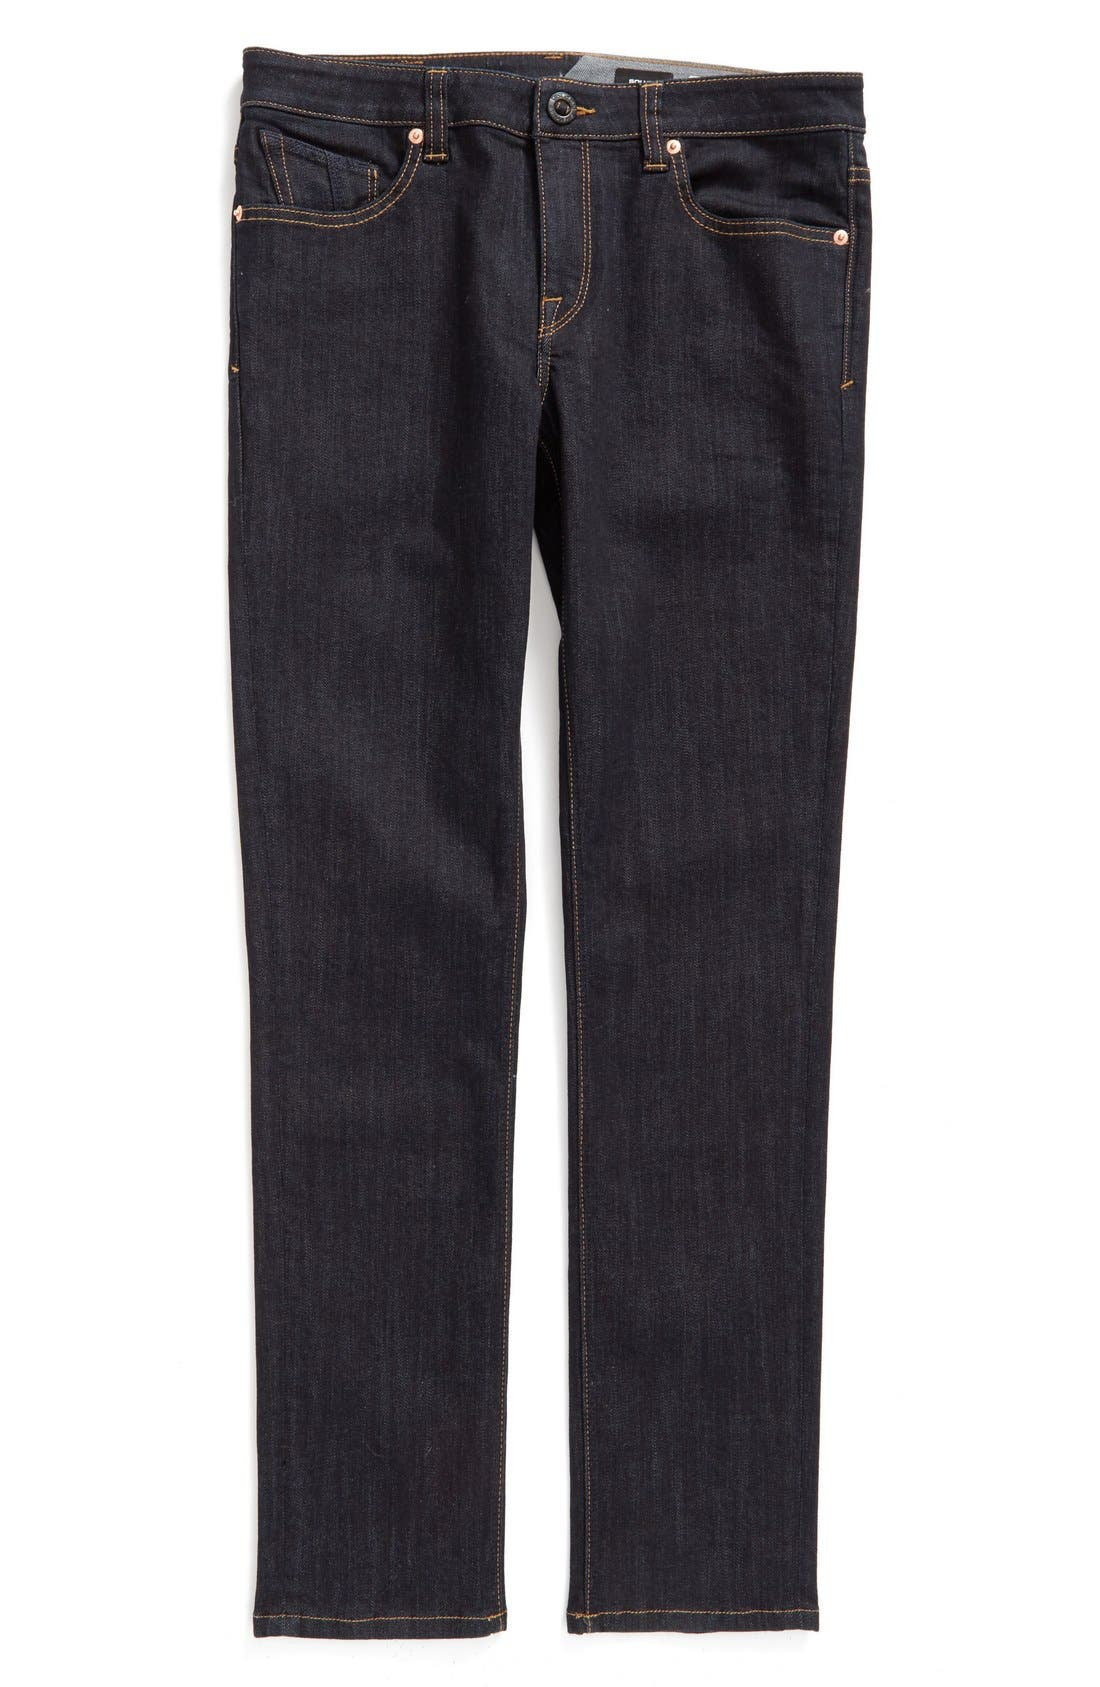 'Solver' Straight Leg Denim Jeans,                         Main,                         color, BLUE RINSE